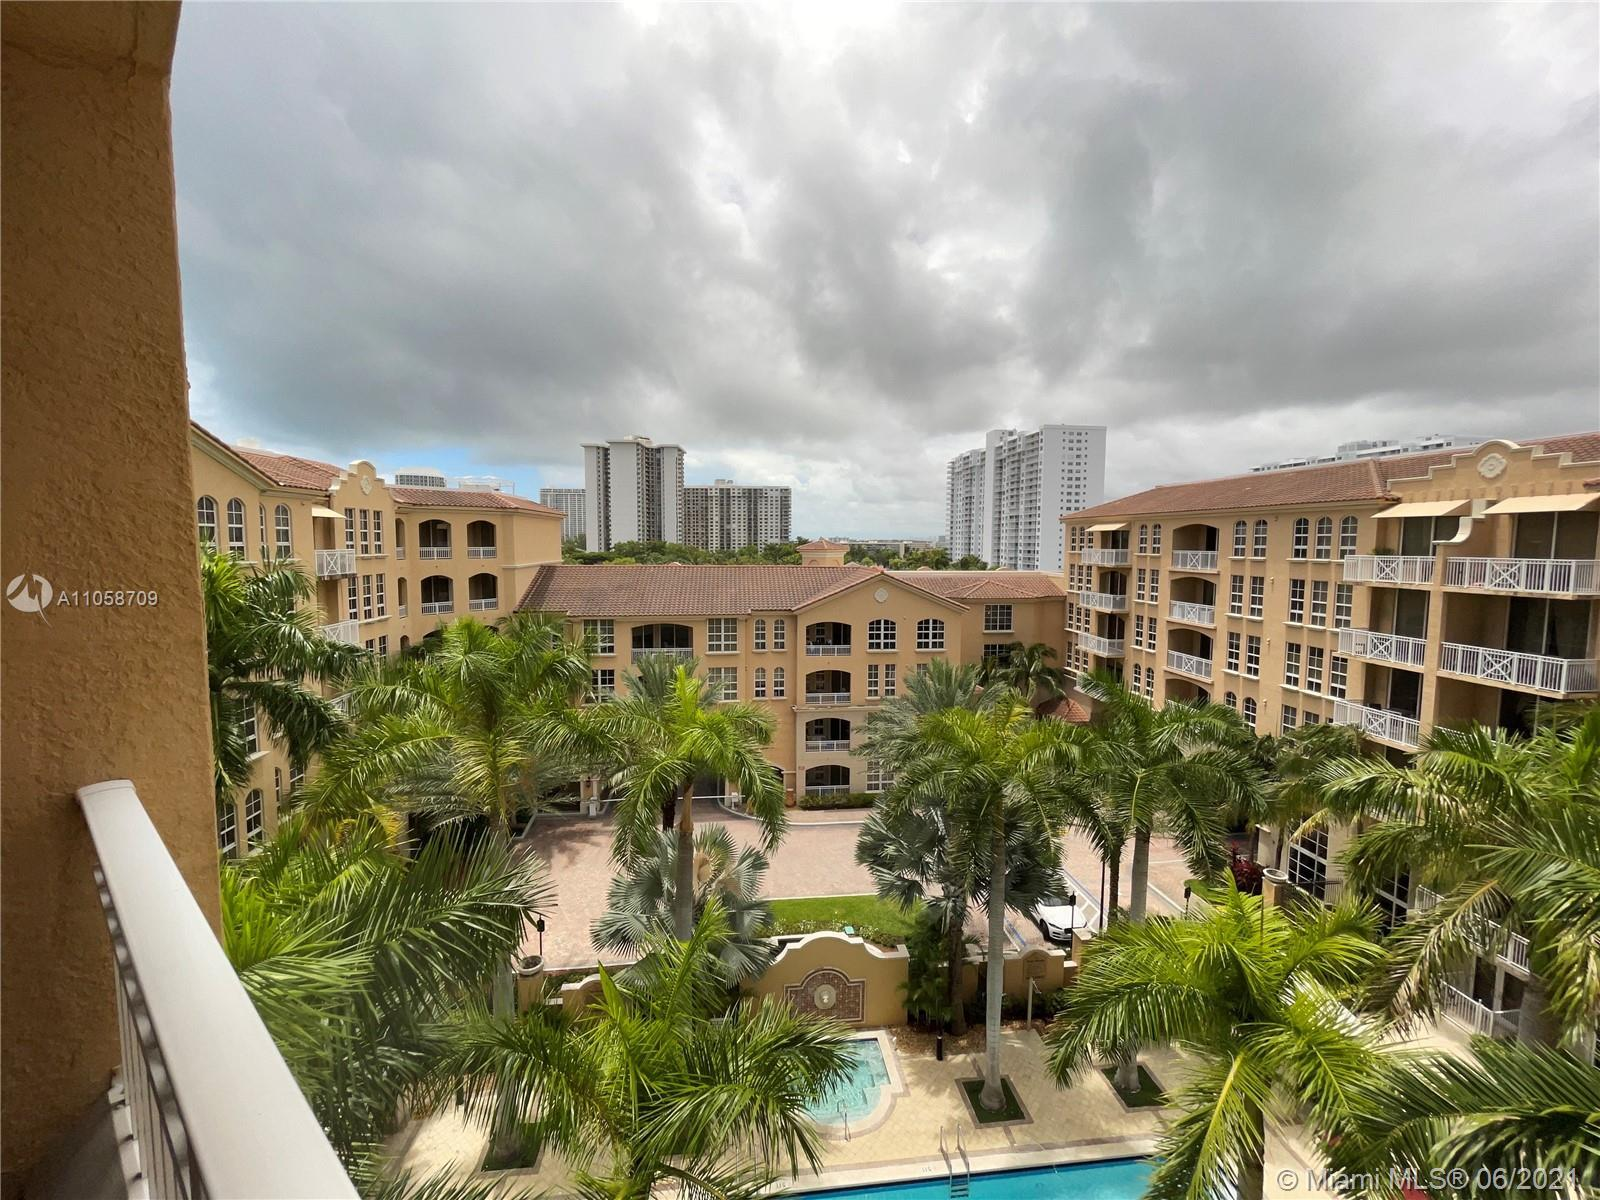 7 Story Mediterranean Style Condo Building with Pool Gym Dock and other amenities.